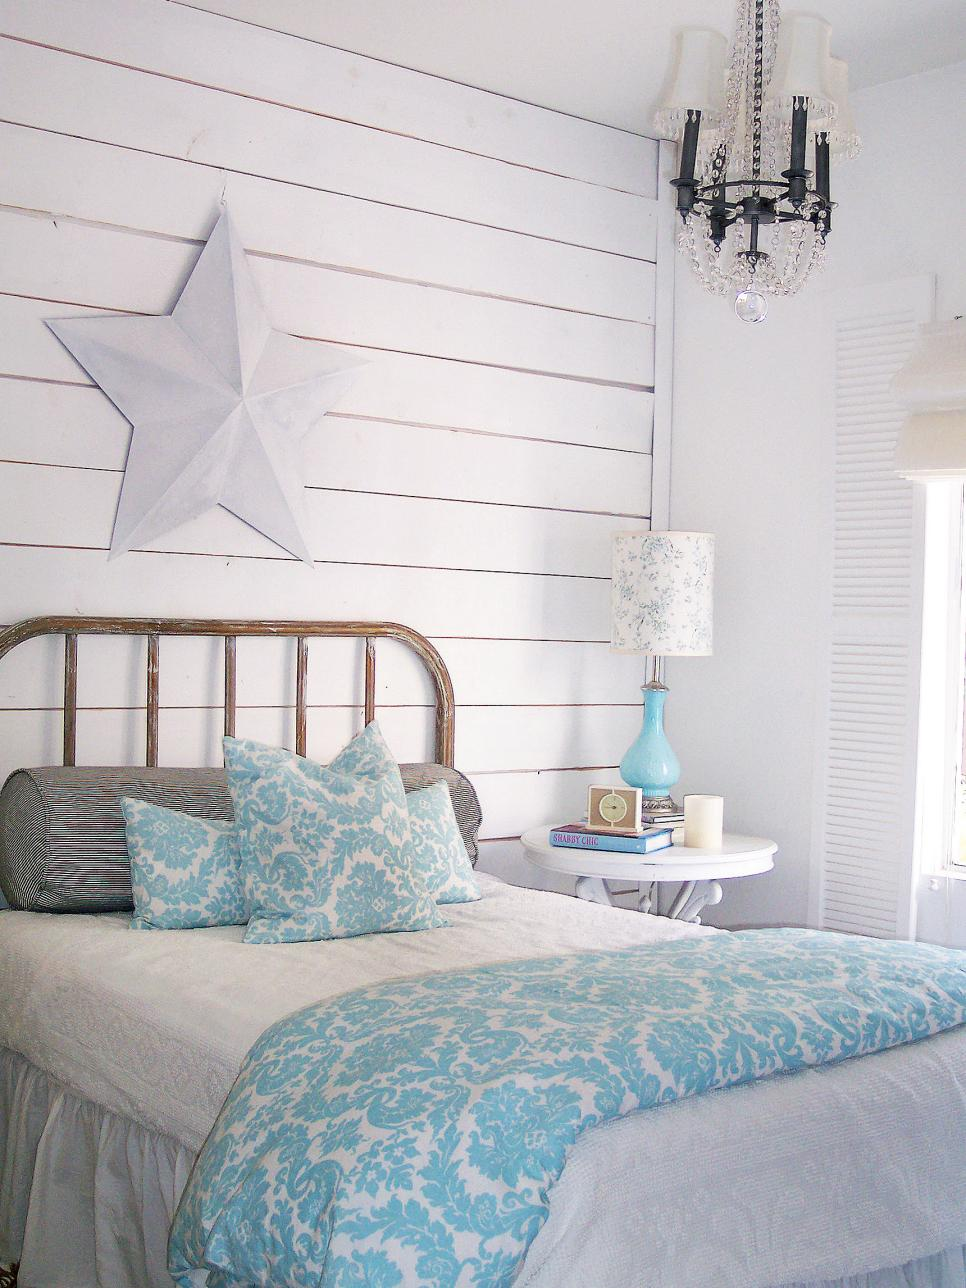 Shabby Chic Bedroom Decorating Ideas On A Budget | Royals Courage ...